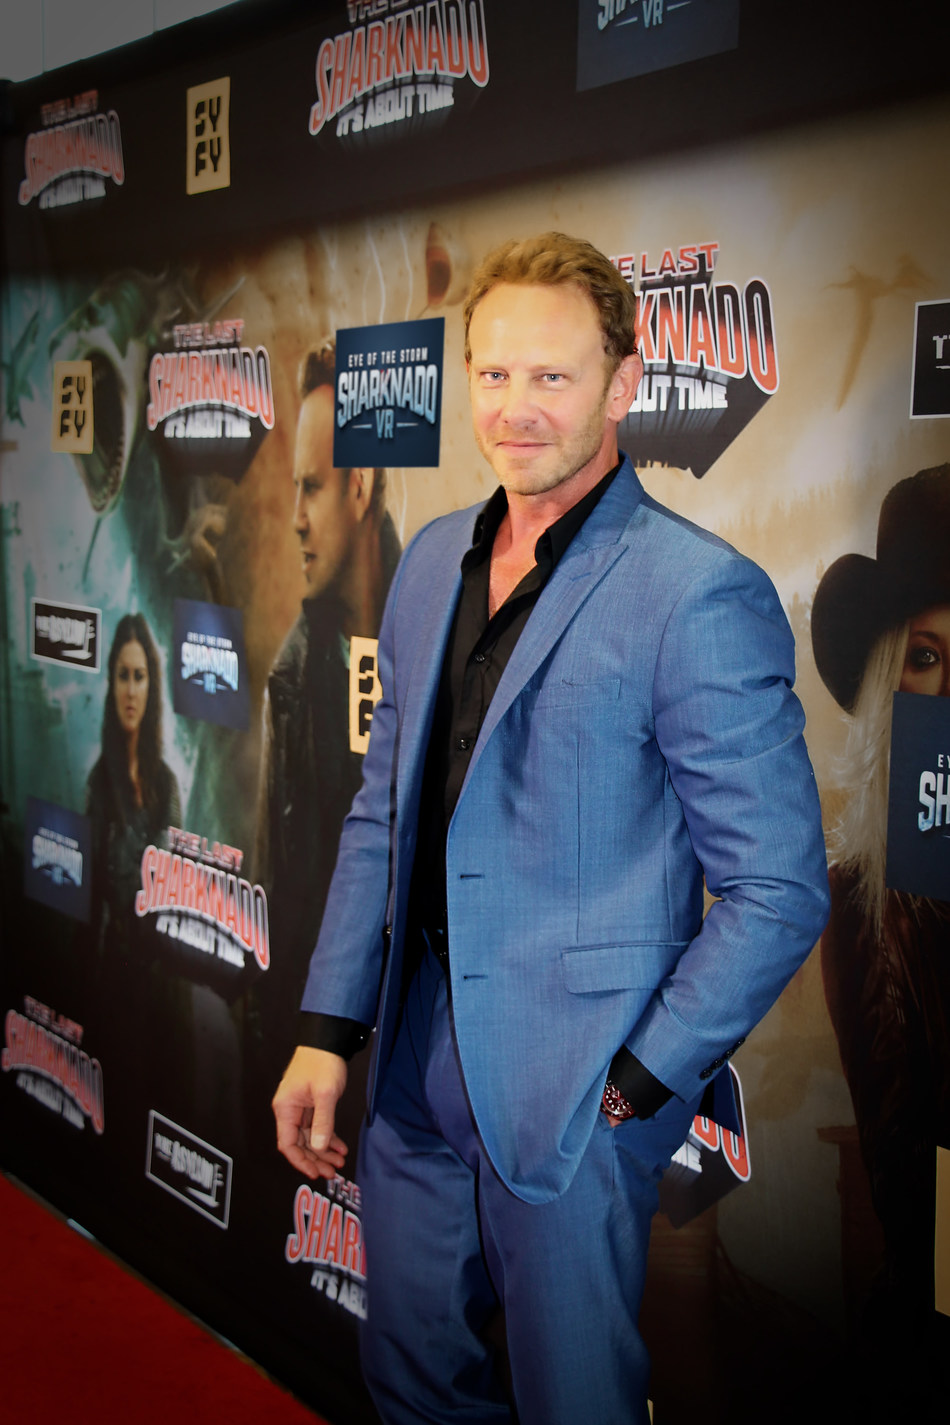 Autumn VR revealed Sharknado VR: Eye of the Storm at Syfy Channel's Sharknado 6 movie premier in Los Angeles with cast member, Ian Ziering.